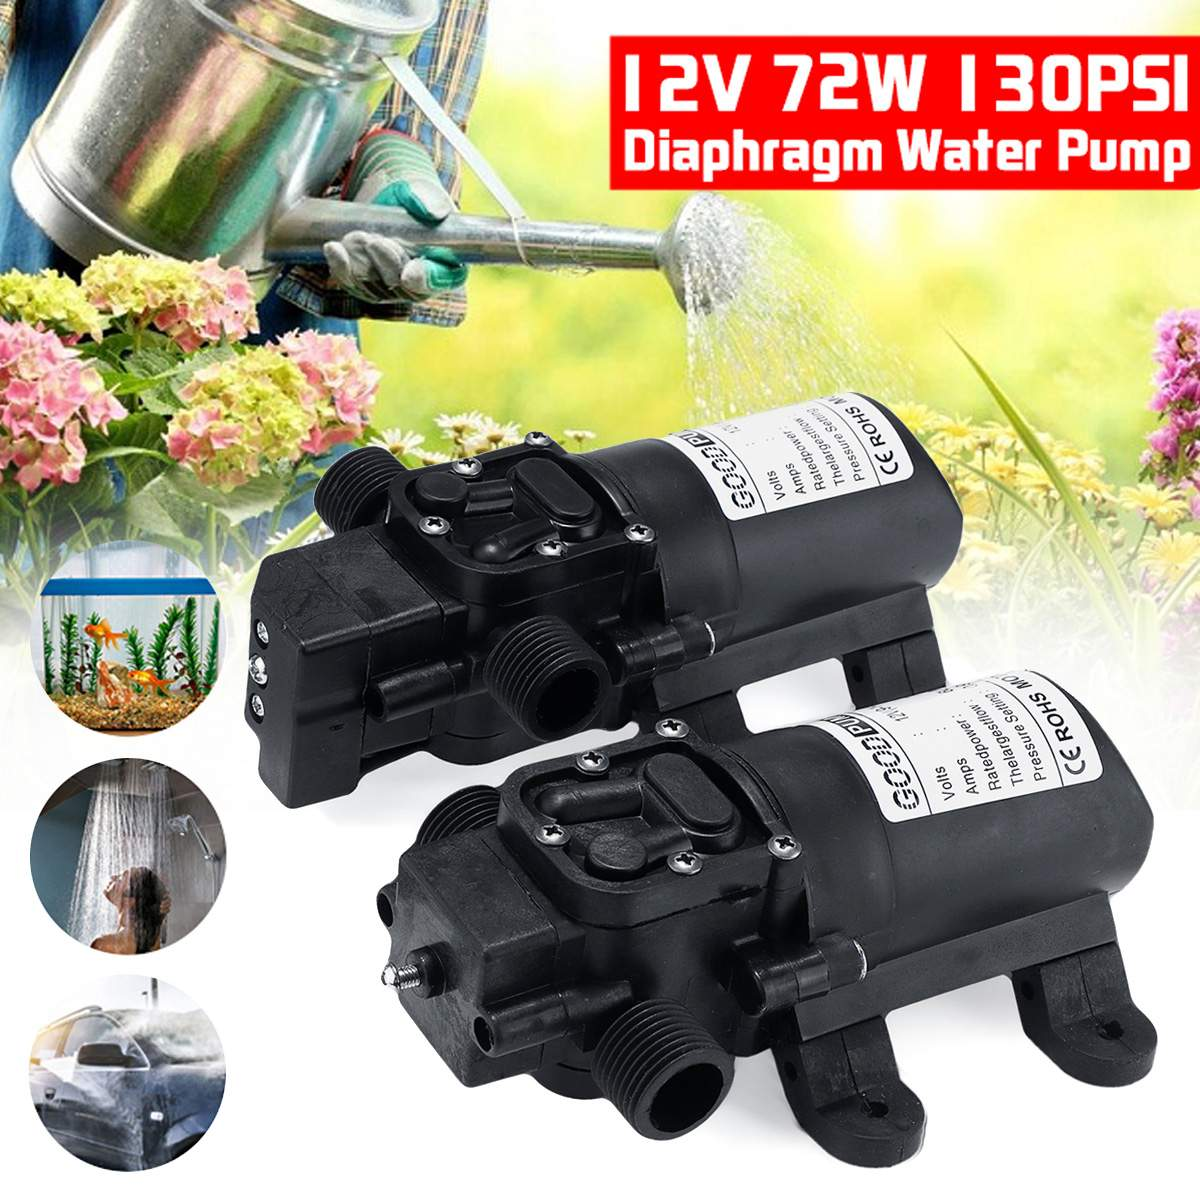 DC 12V 130PSI 72W Electric Water Pump Micro High Pressure Diaphragm Water Pump Sprayer Fpr Car Wash 12 V Home Garden